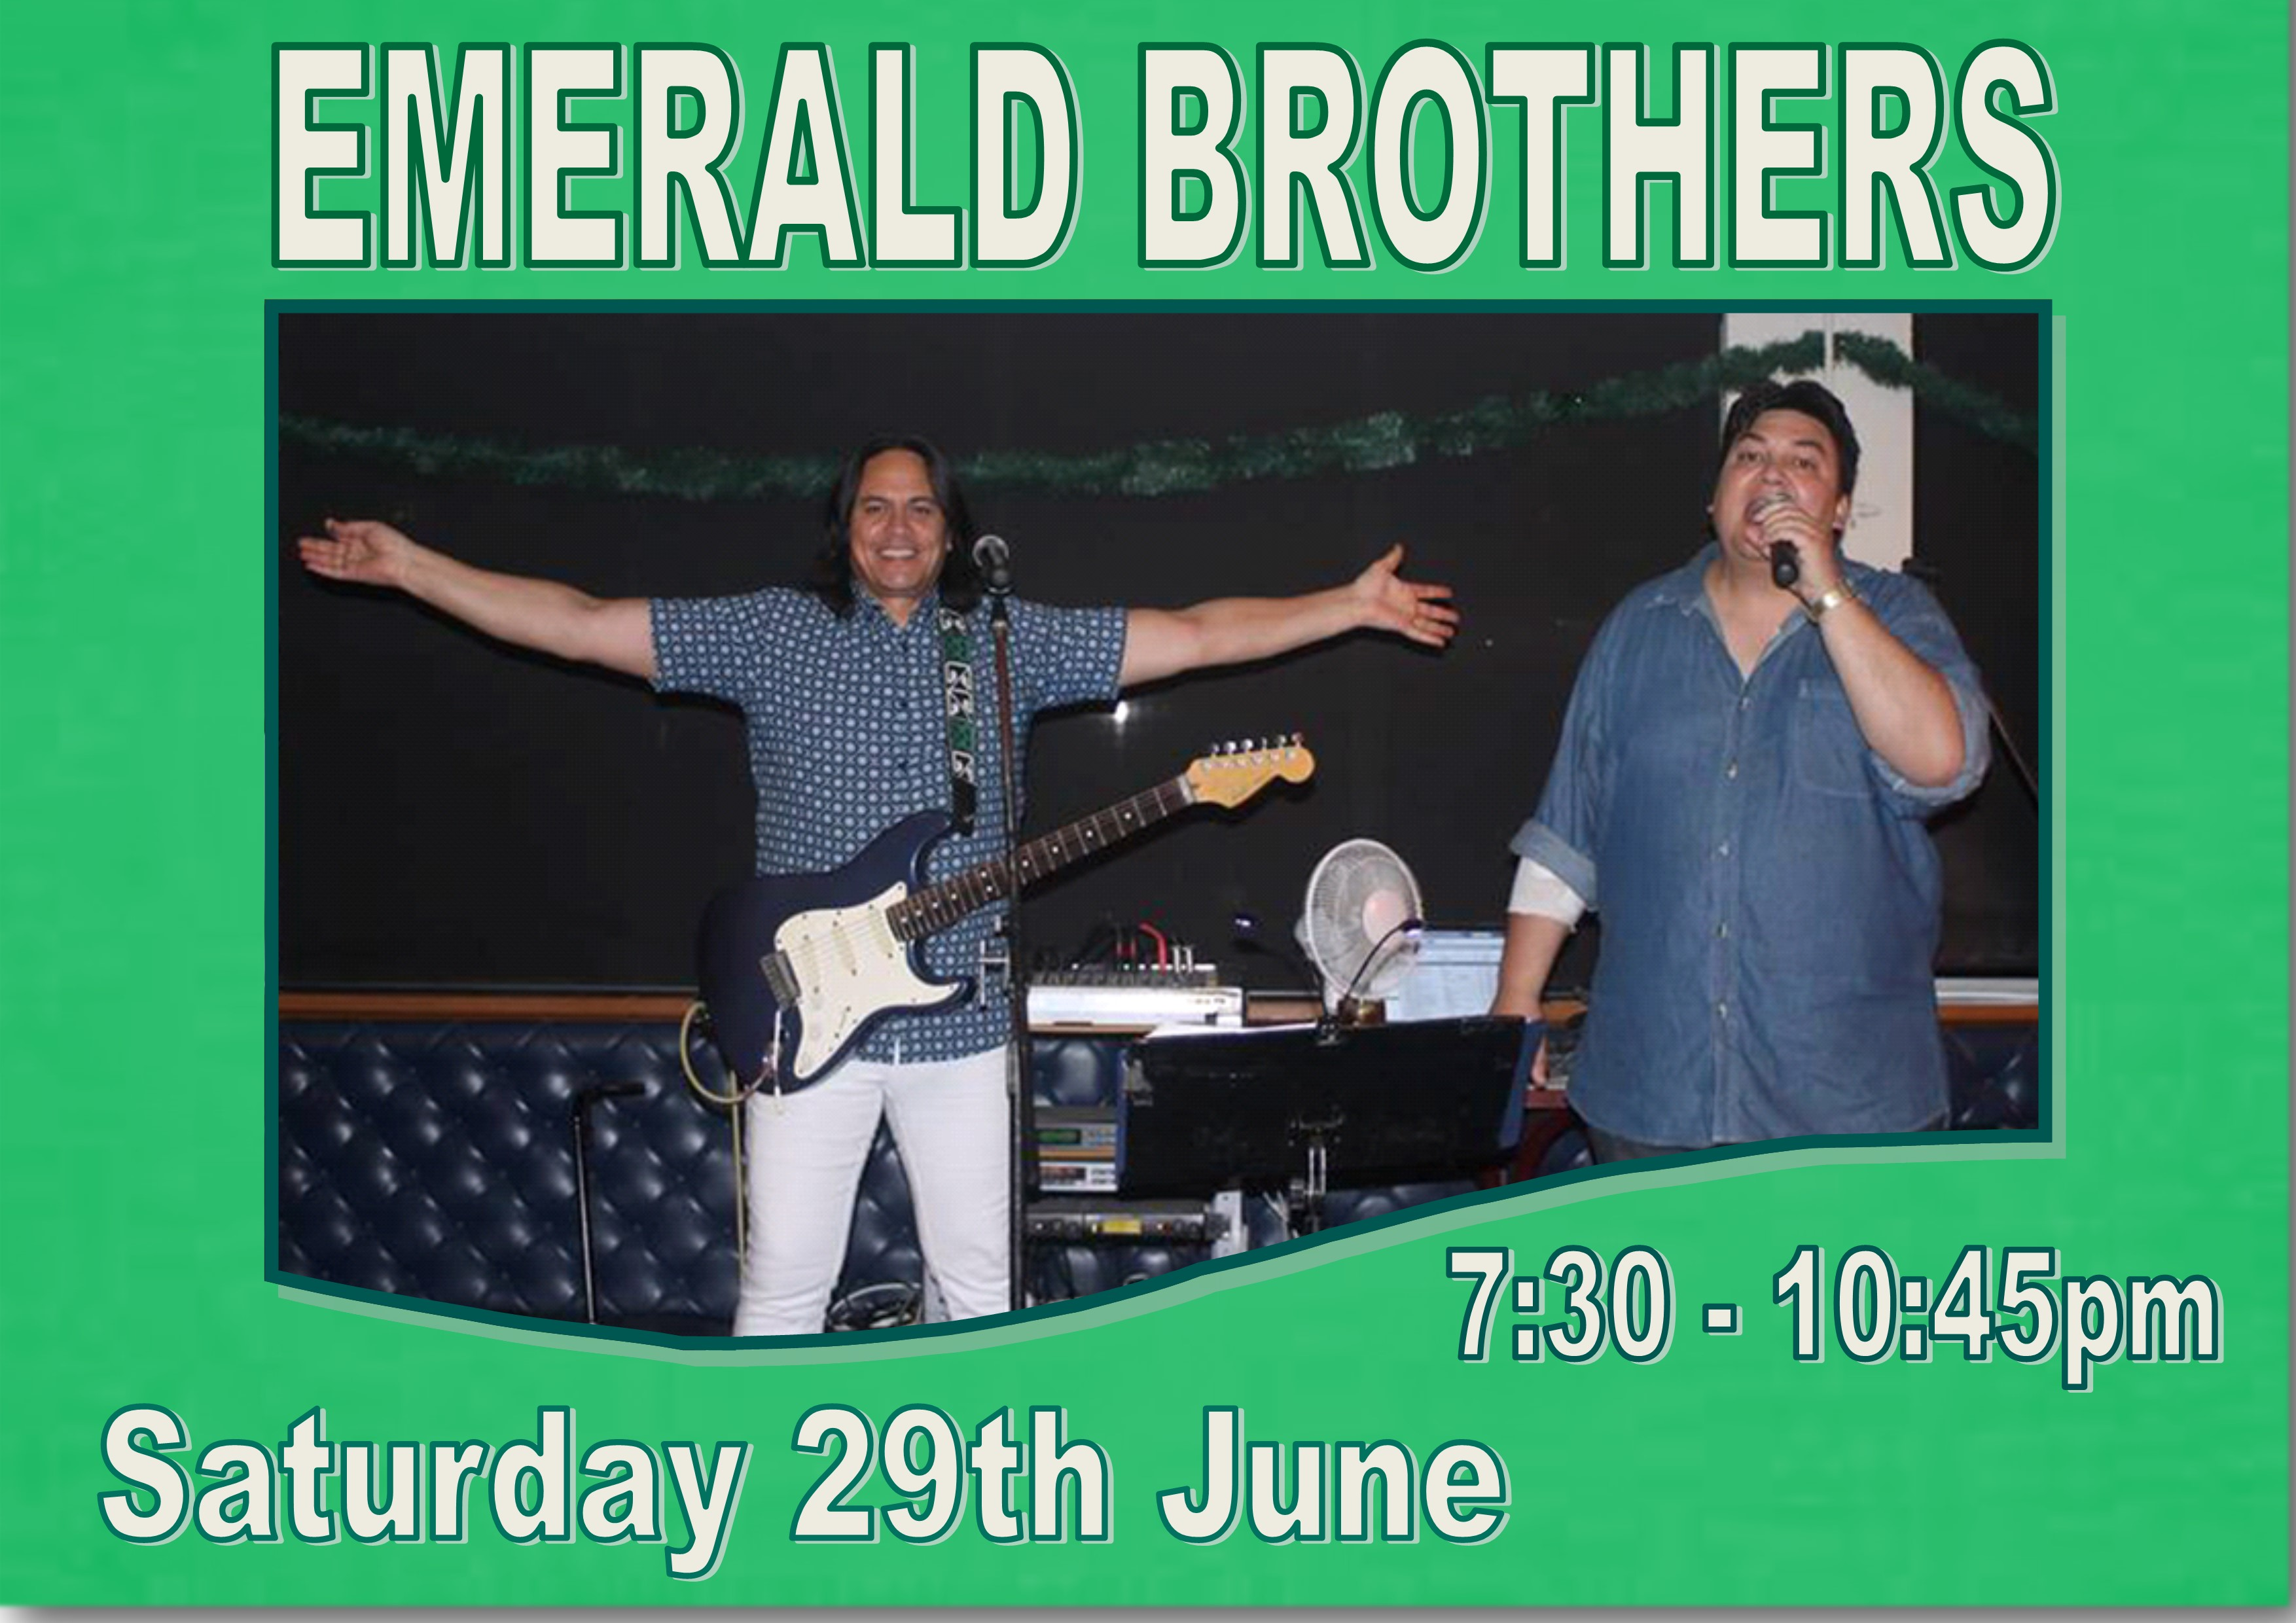 Emerald Brothers